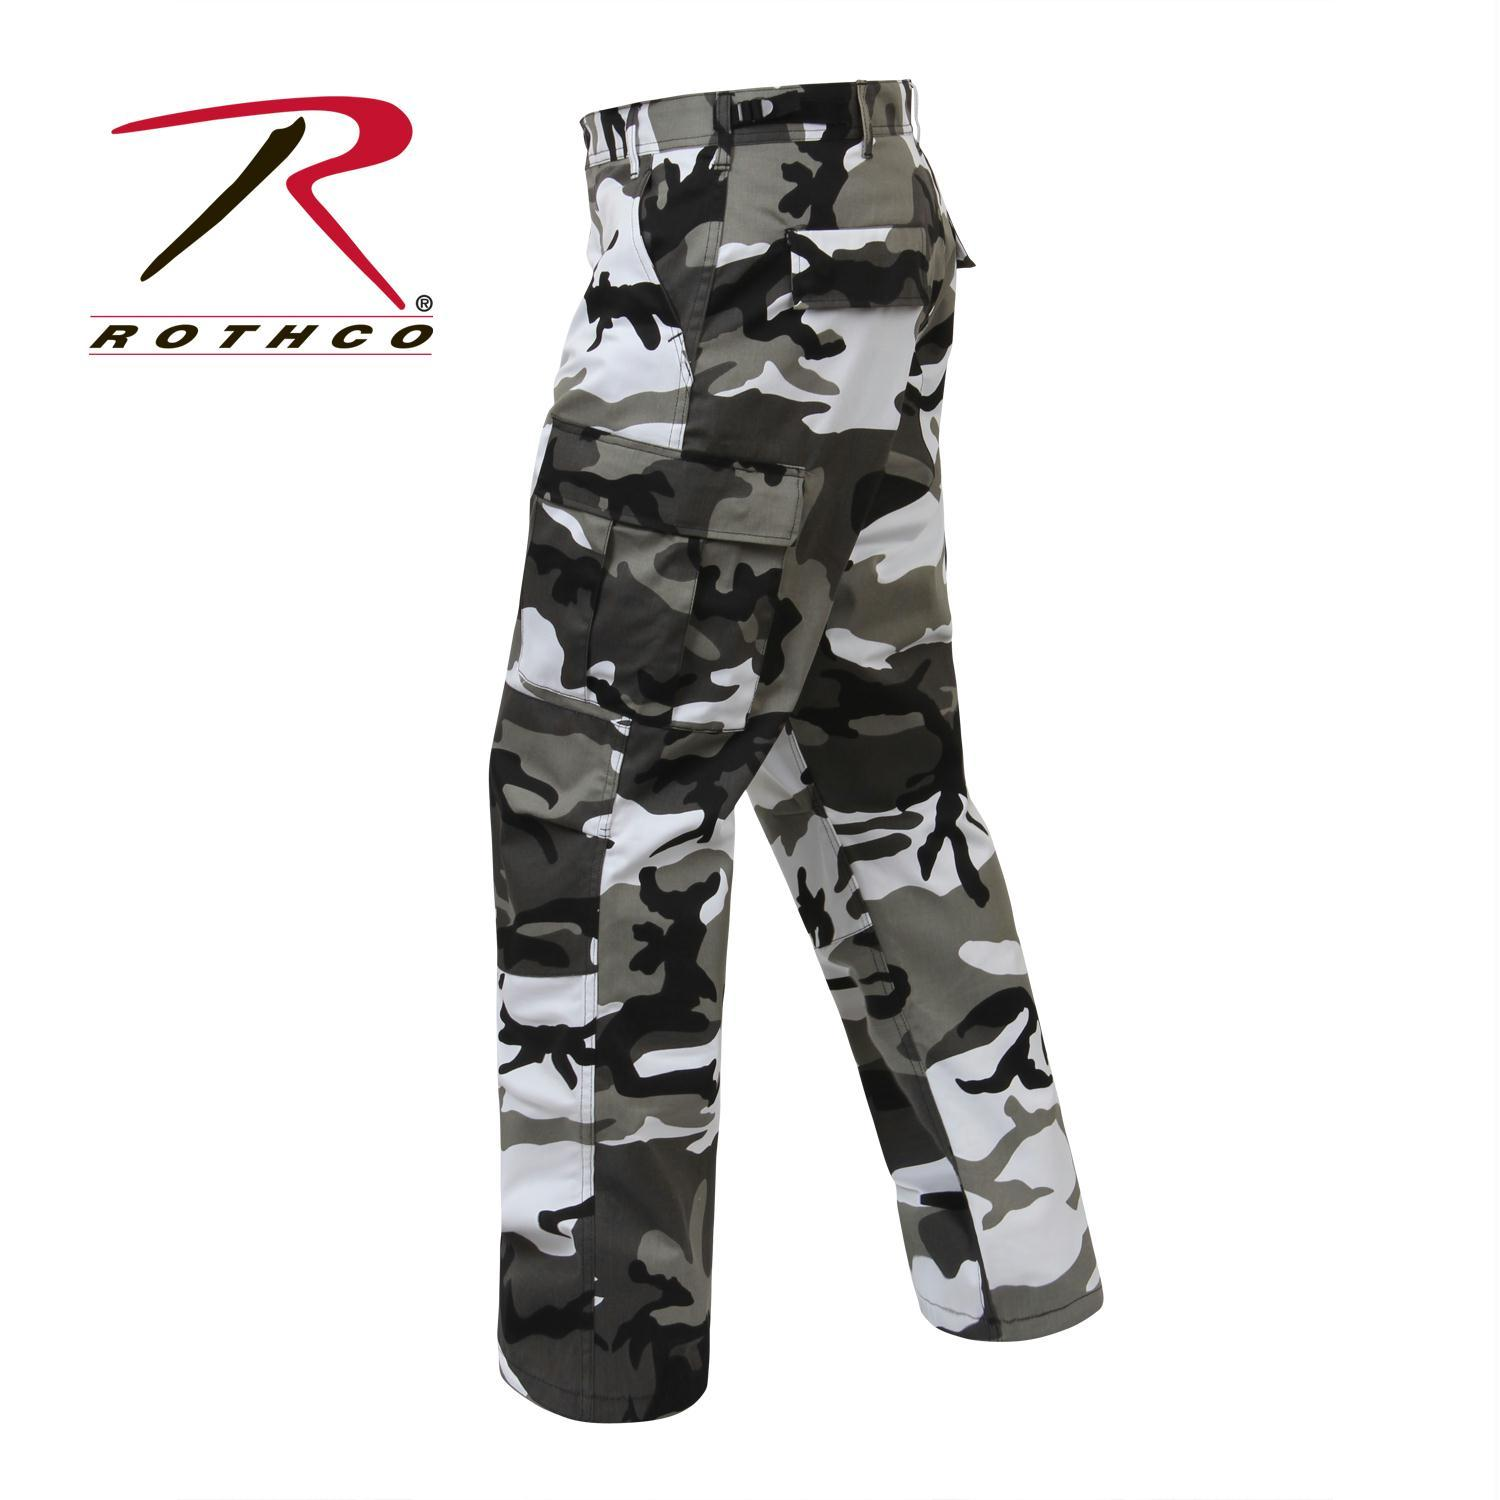 City Camo BDU Pants, Military Fatigues by Rothco